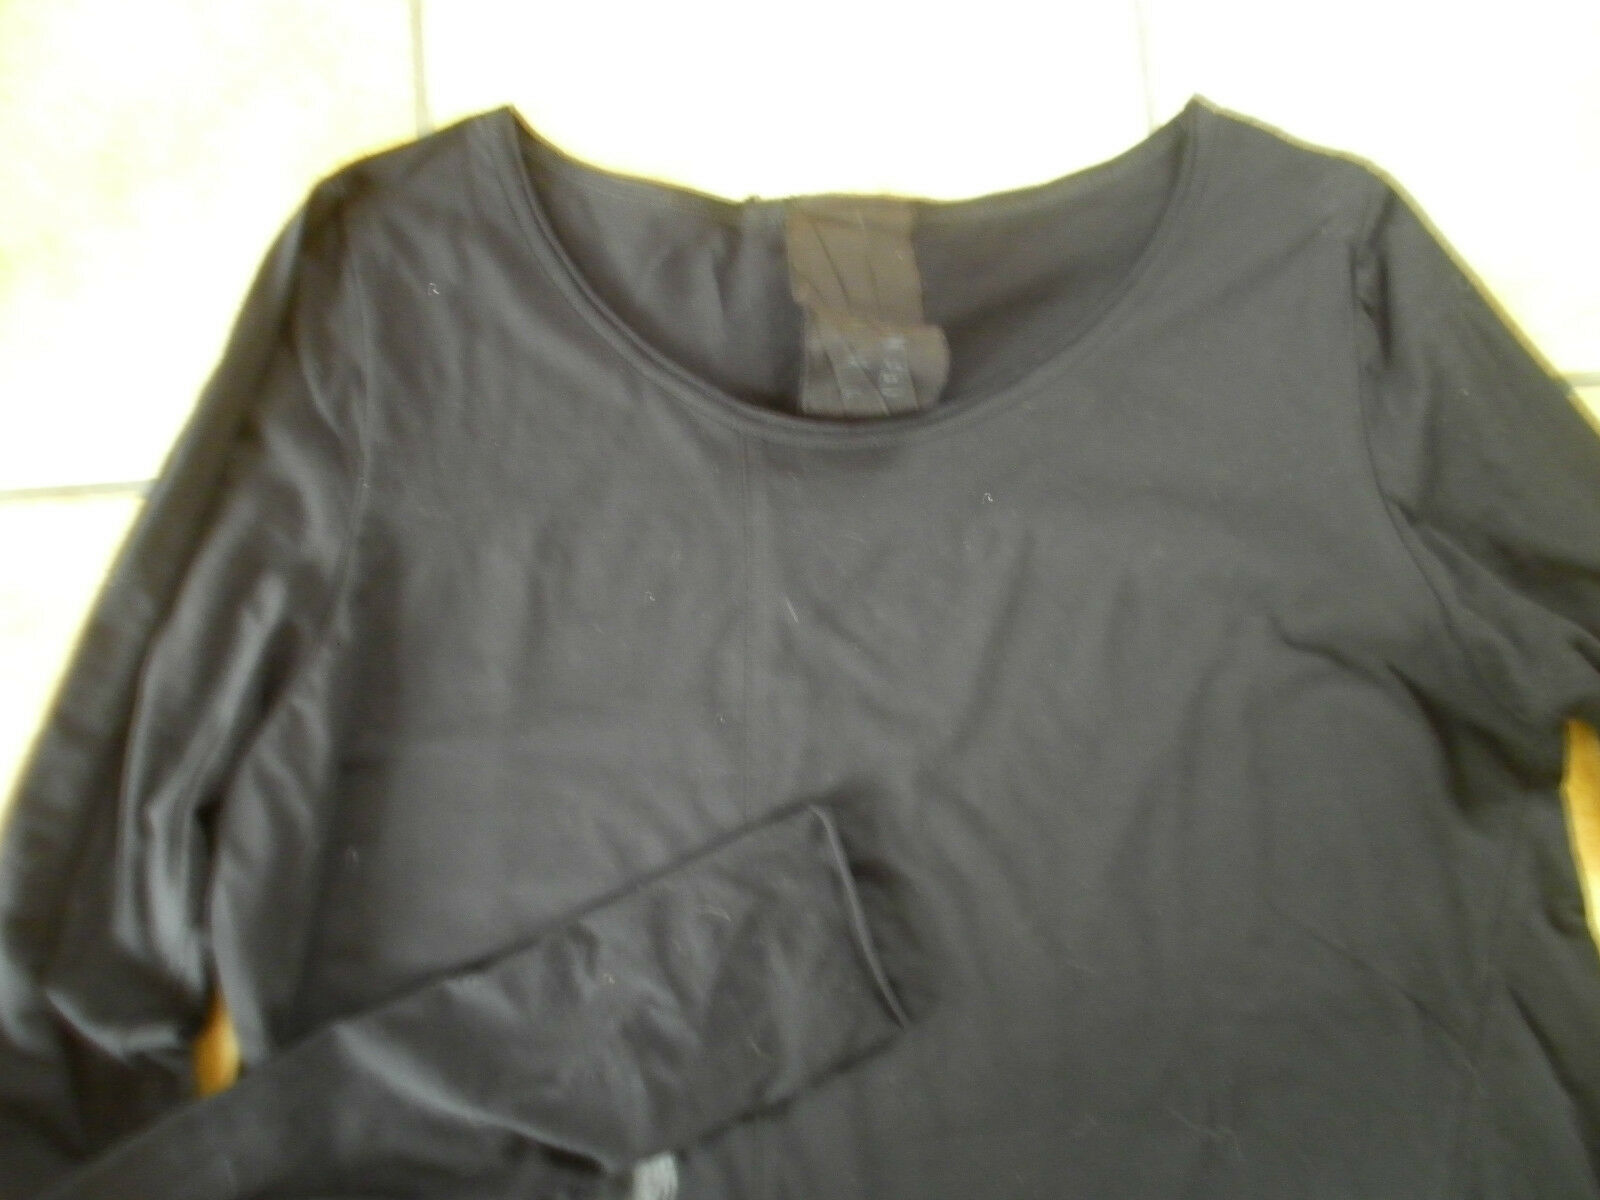 PAL Offner, shirt tunica in in in sostanza RUNDHOLZ Sacchetti, Tg. 6 (XL, OS), lagenl indossato .1x. 286f16